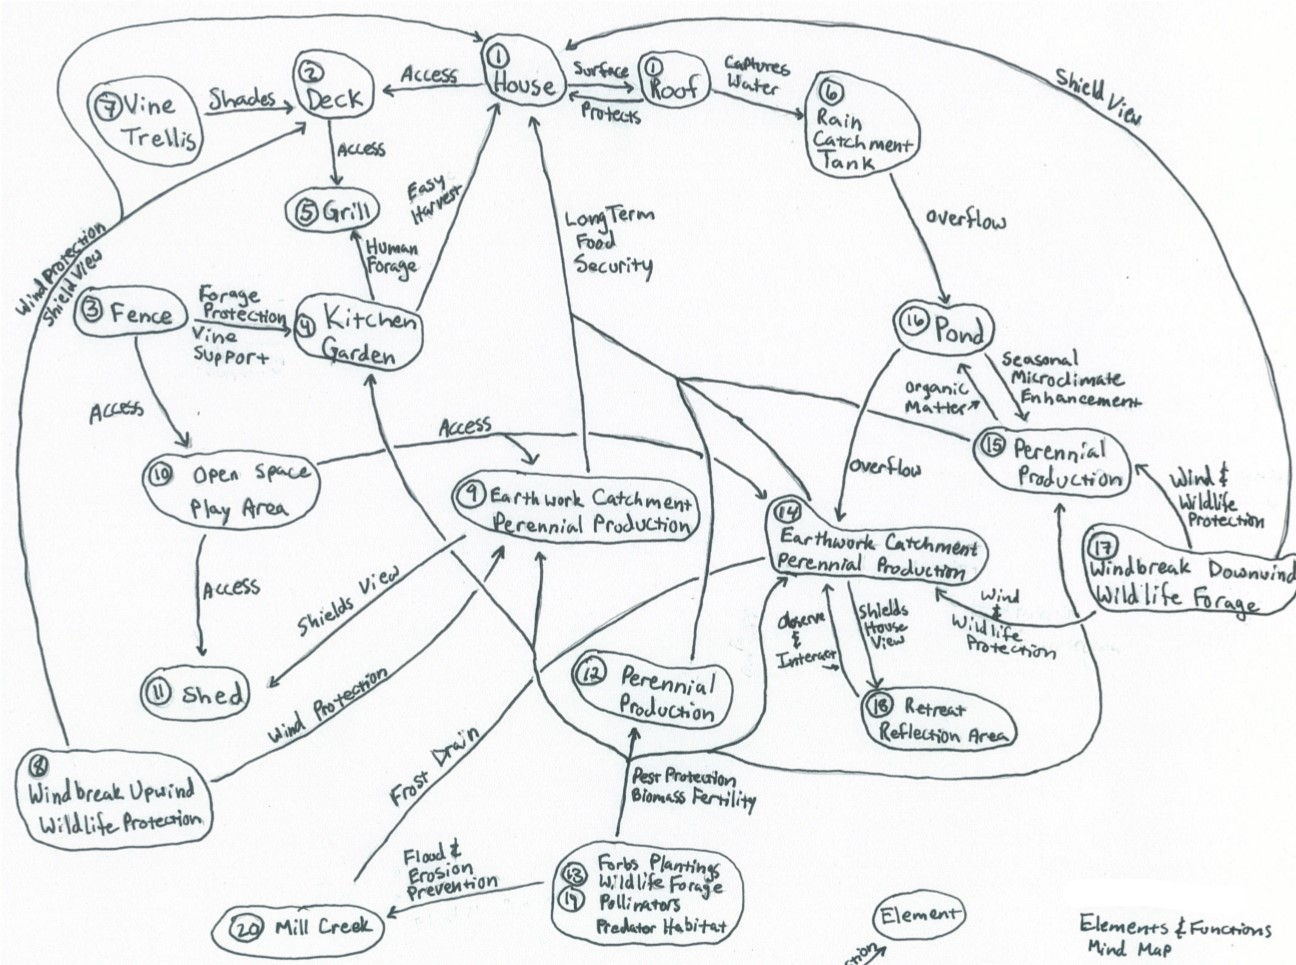 Permaculture Elements and Functions